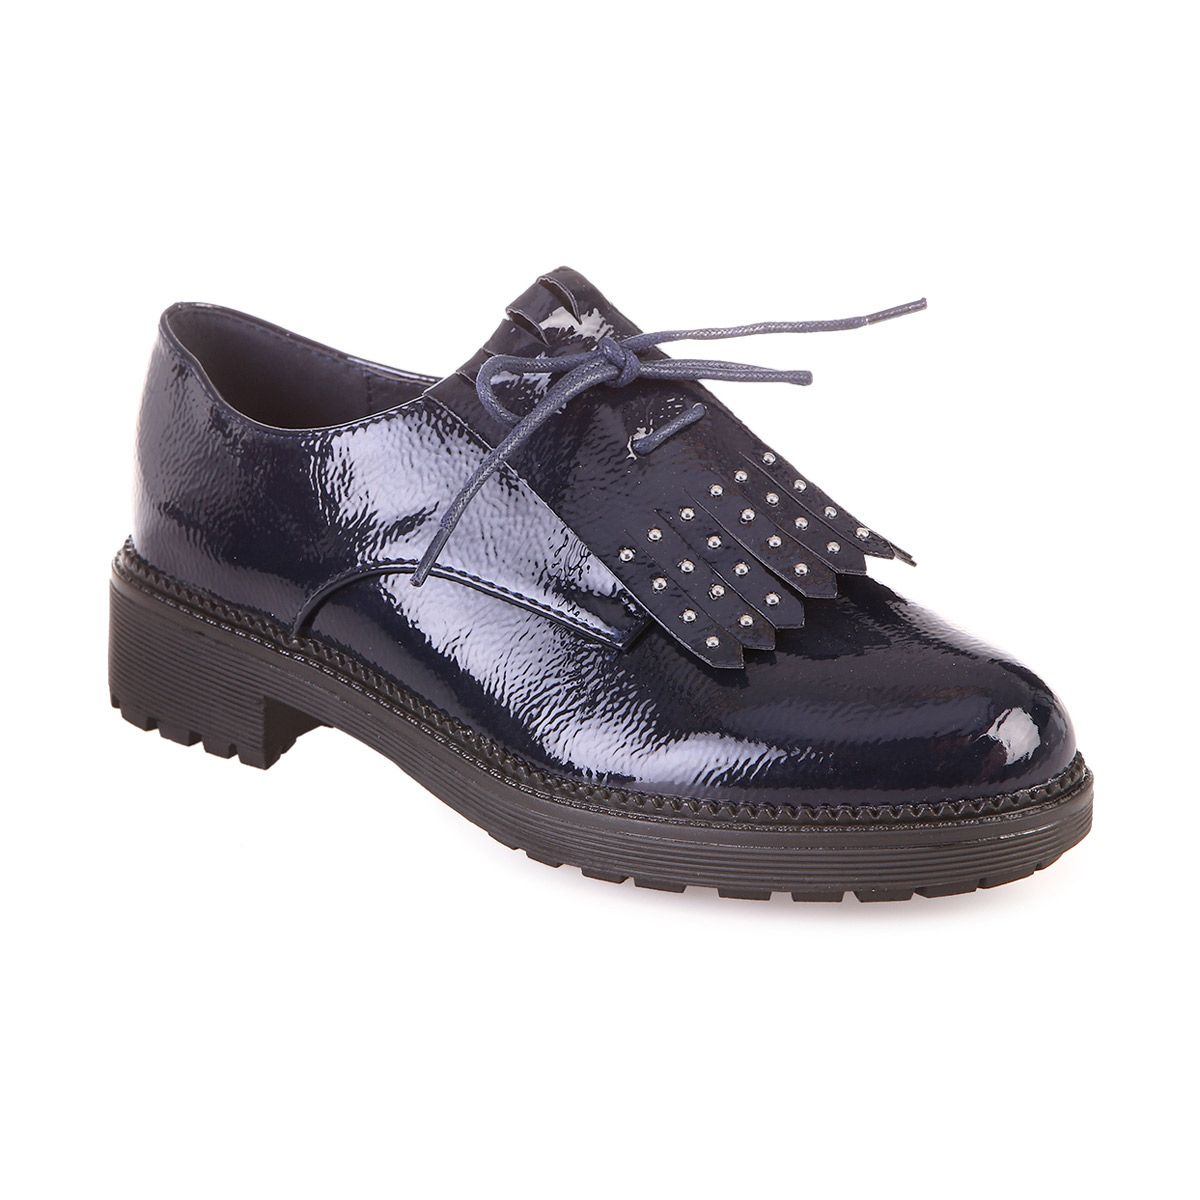 Derbies vernis bleu marine à franges et clous